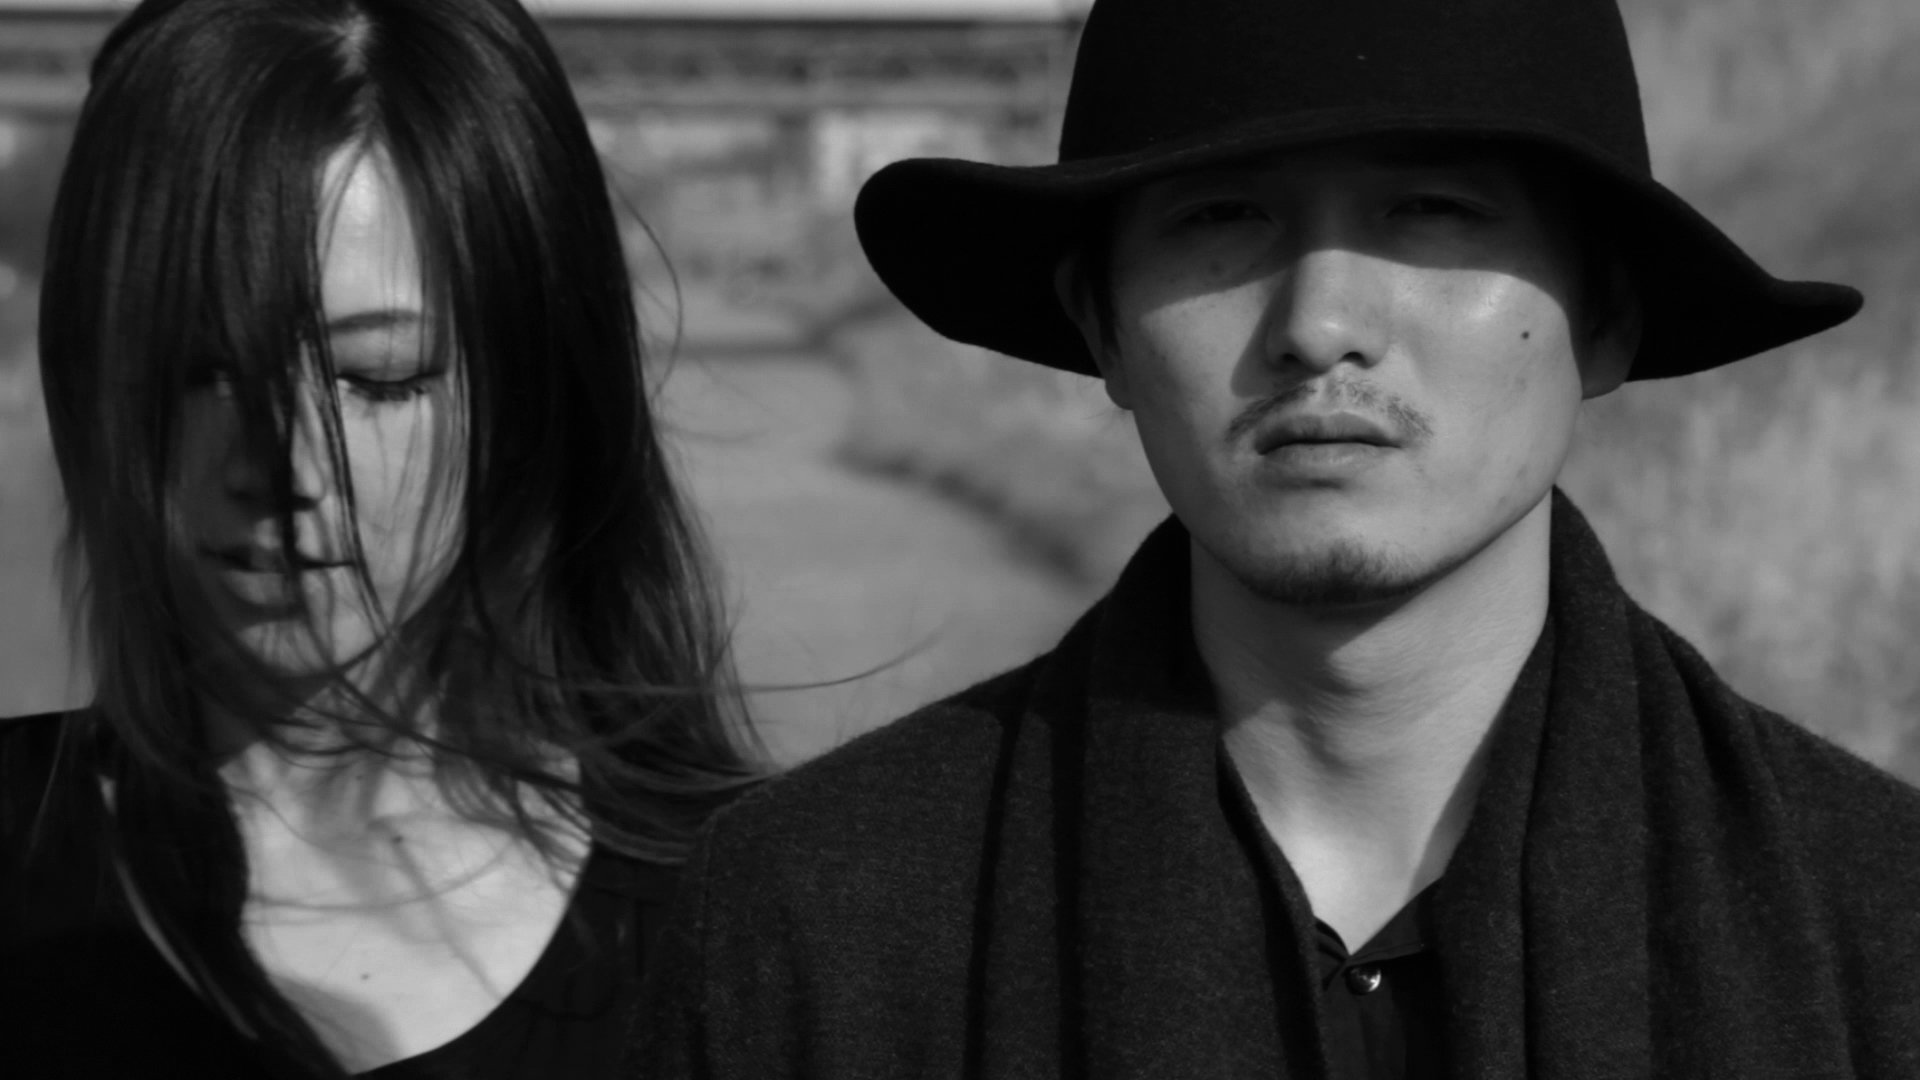 The River Bank, The Couple, The Ghosts film - Takaaki Watanabe